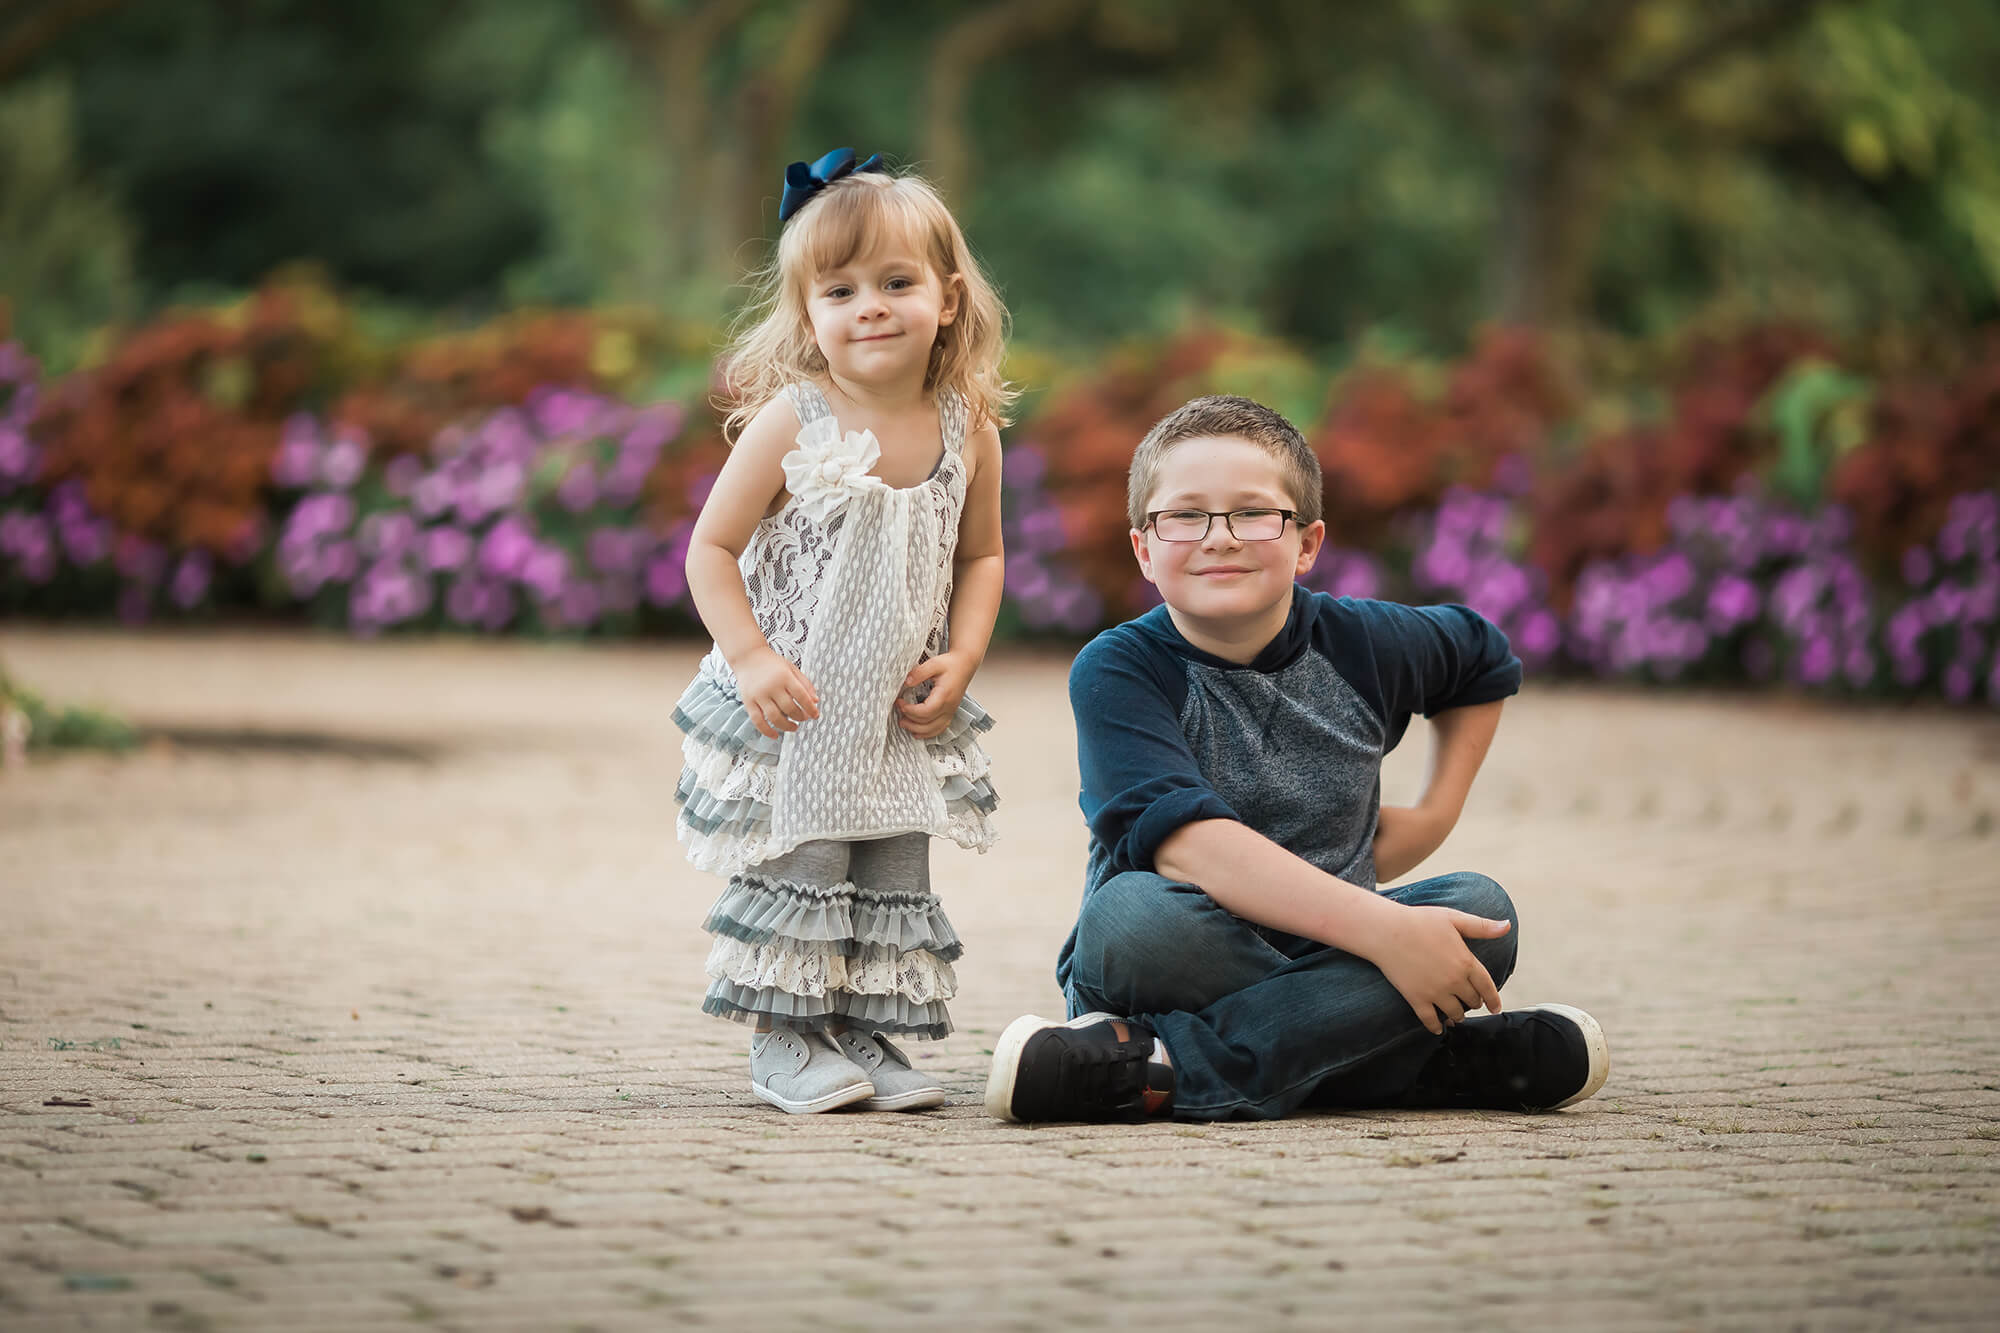 Sweet Snaps Photography - Valparaiso Indiana Children Photographer